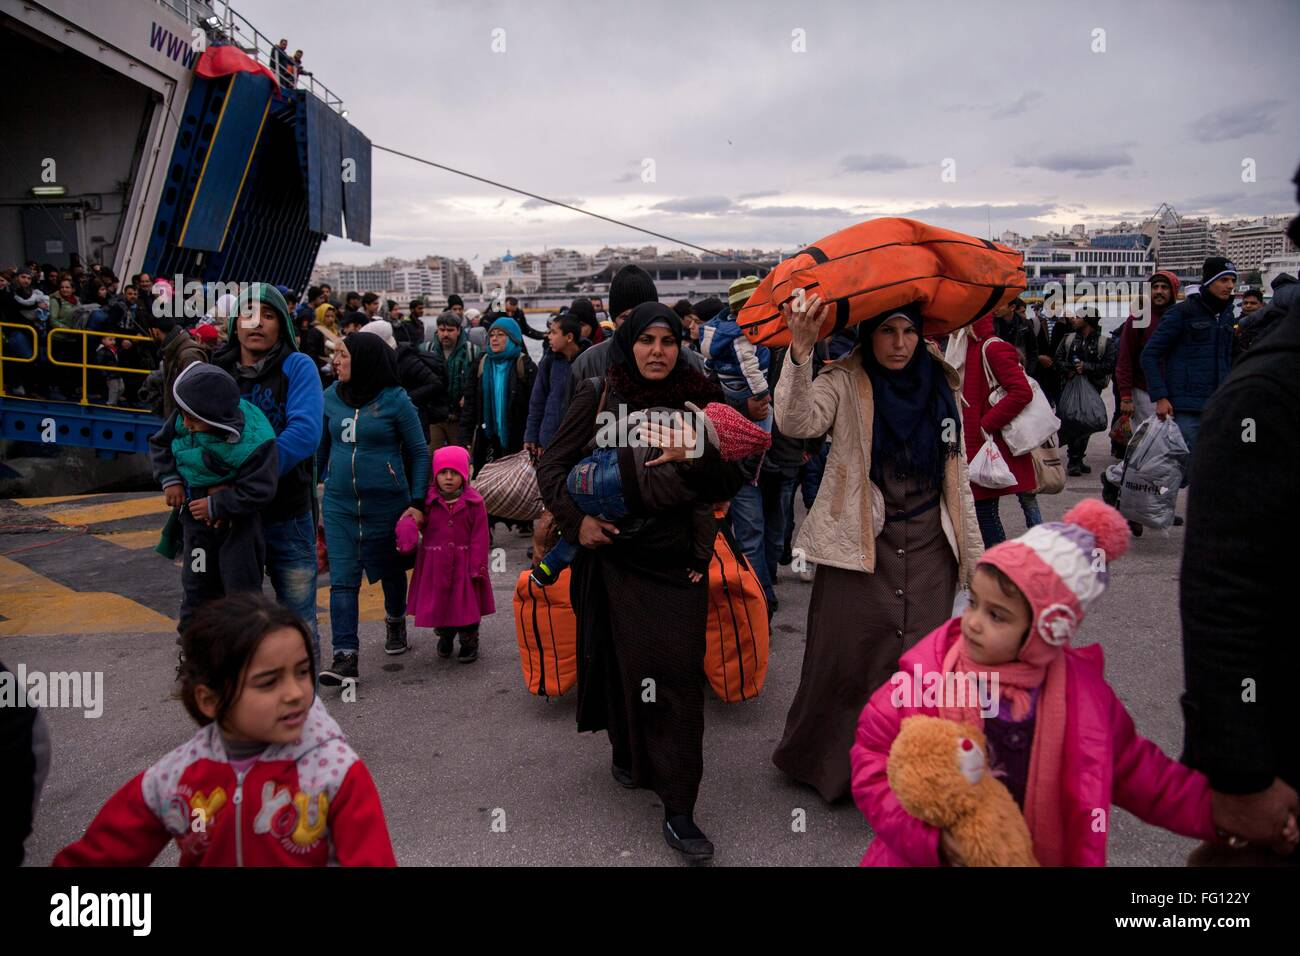 Refguees reach habour of Piraeus. Despite difficulties ahead, thousands of refugees continue to reach main land - Stock Image